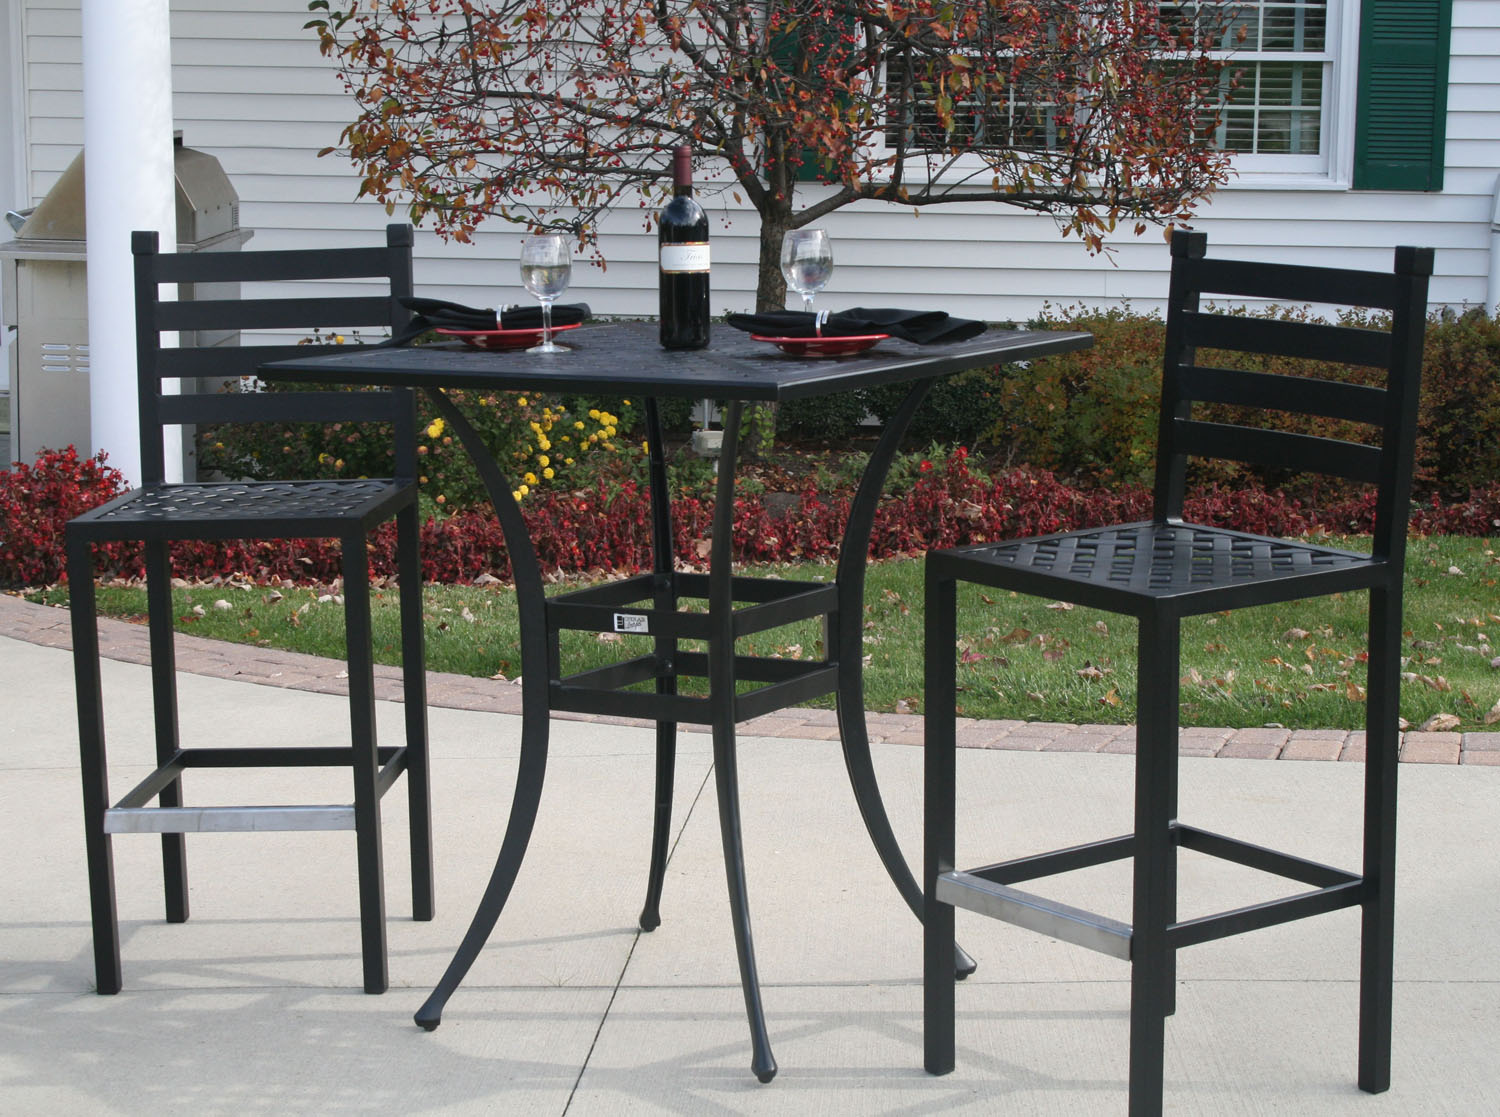 2 chairs and table patio set swivel chair littlewoods ansley luxury person all welded cast aluminum